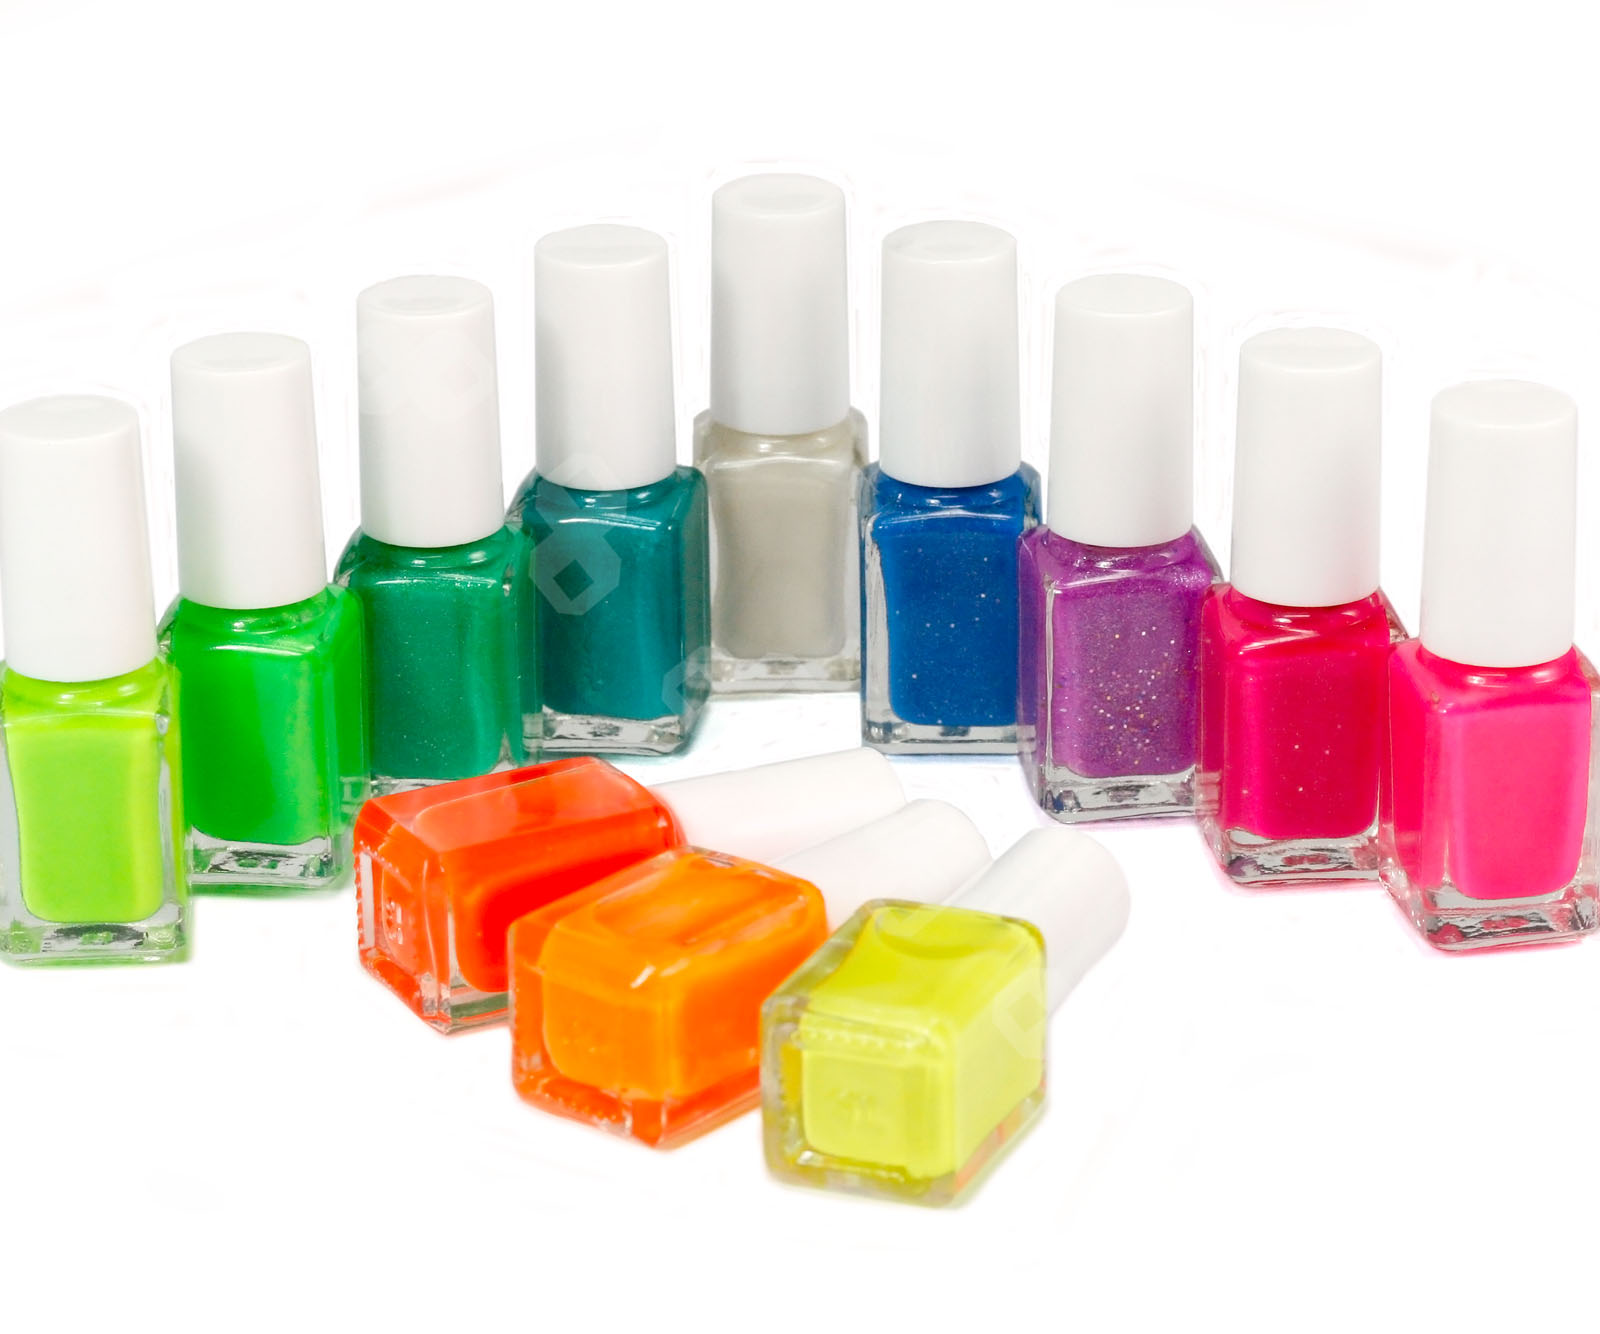 Fluorescent Neon Pink Nail Polish: 12 Colors 7ml Fluorescent Neon Nail Art Polish Glow In